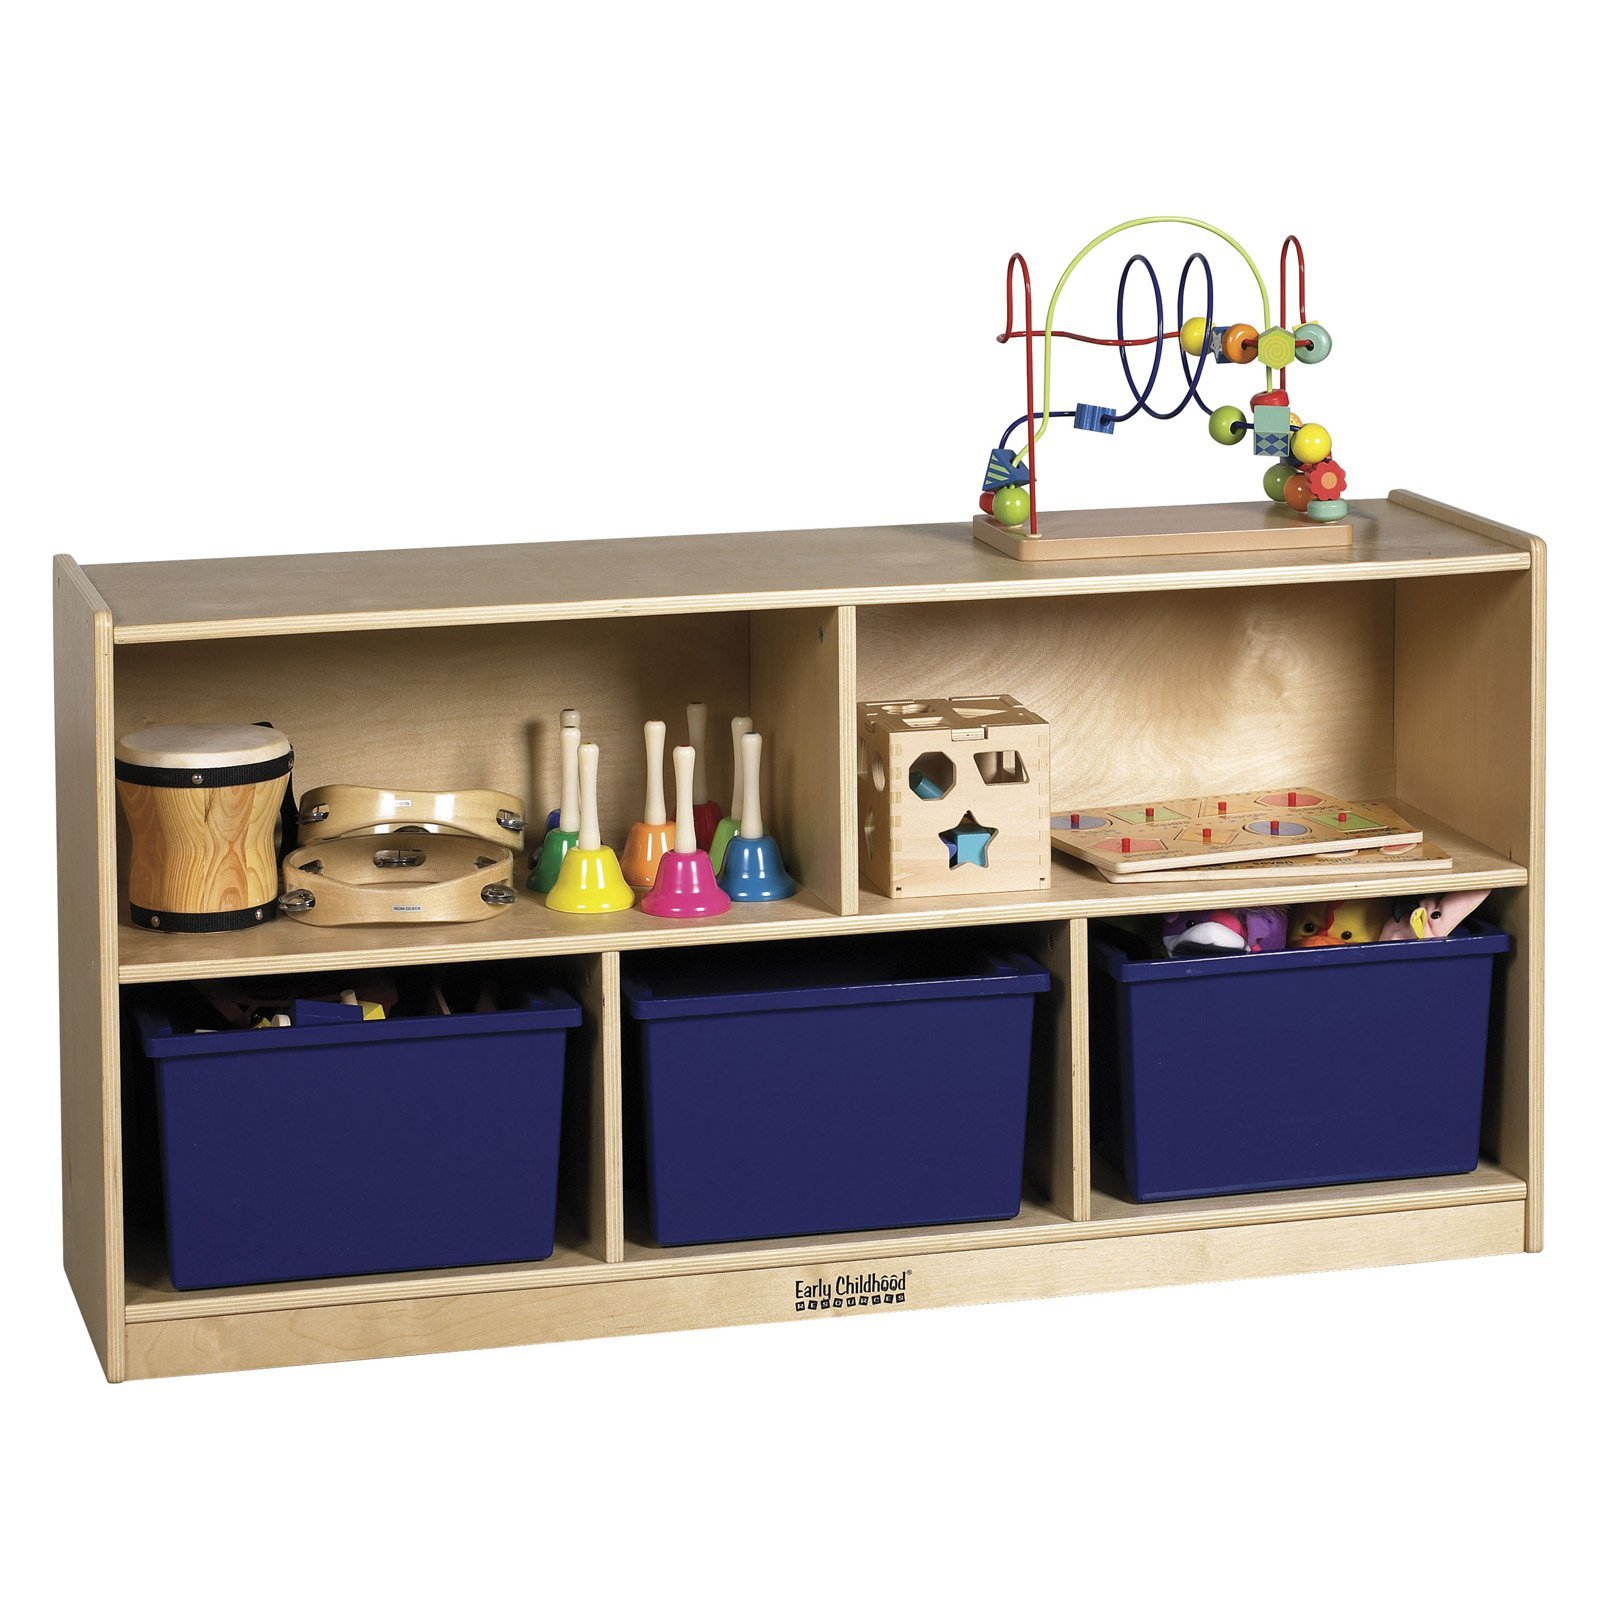 24'' Birch Storage Cabinet 5 Compartments to Hold Toys Puzzles and Storage Bins Up to 12'' Deep Heavy-duty Casters are Included for Easy Mobility by eCom Fortune